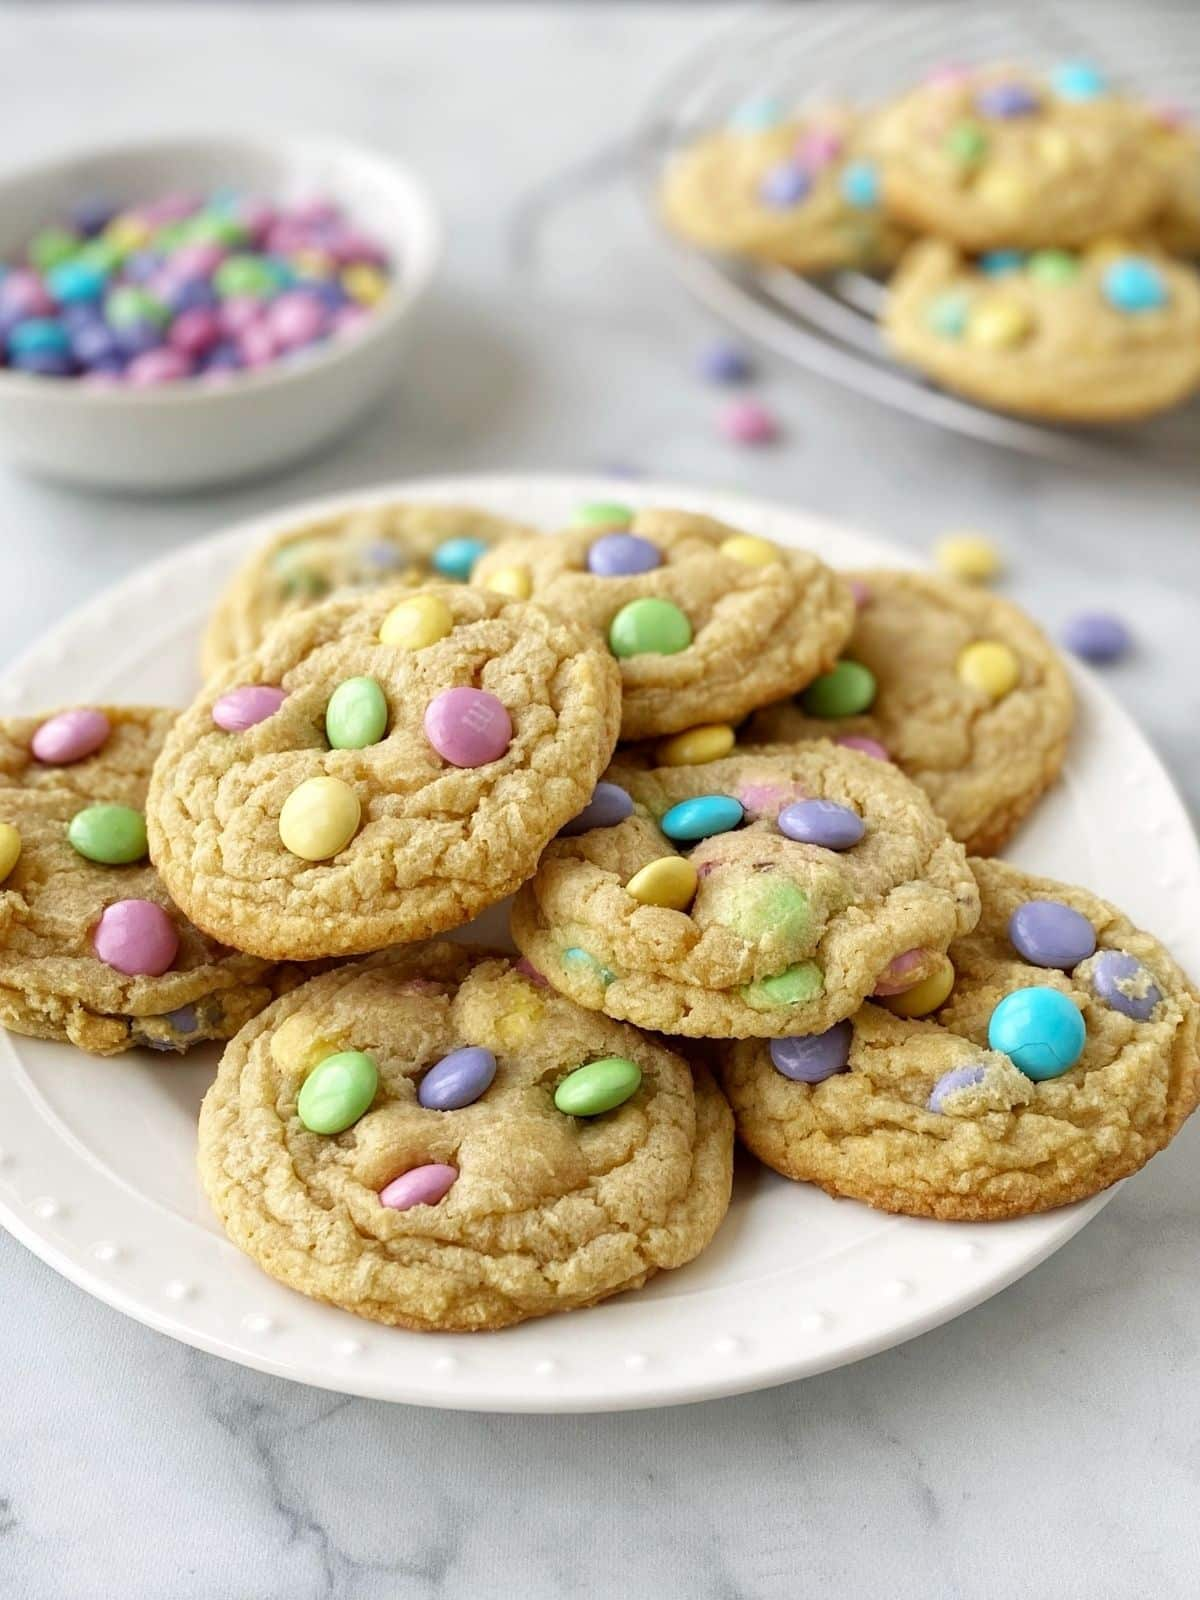 side view of cookies on a plate with a dish of candies and more cookies in the background